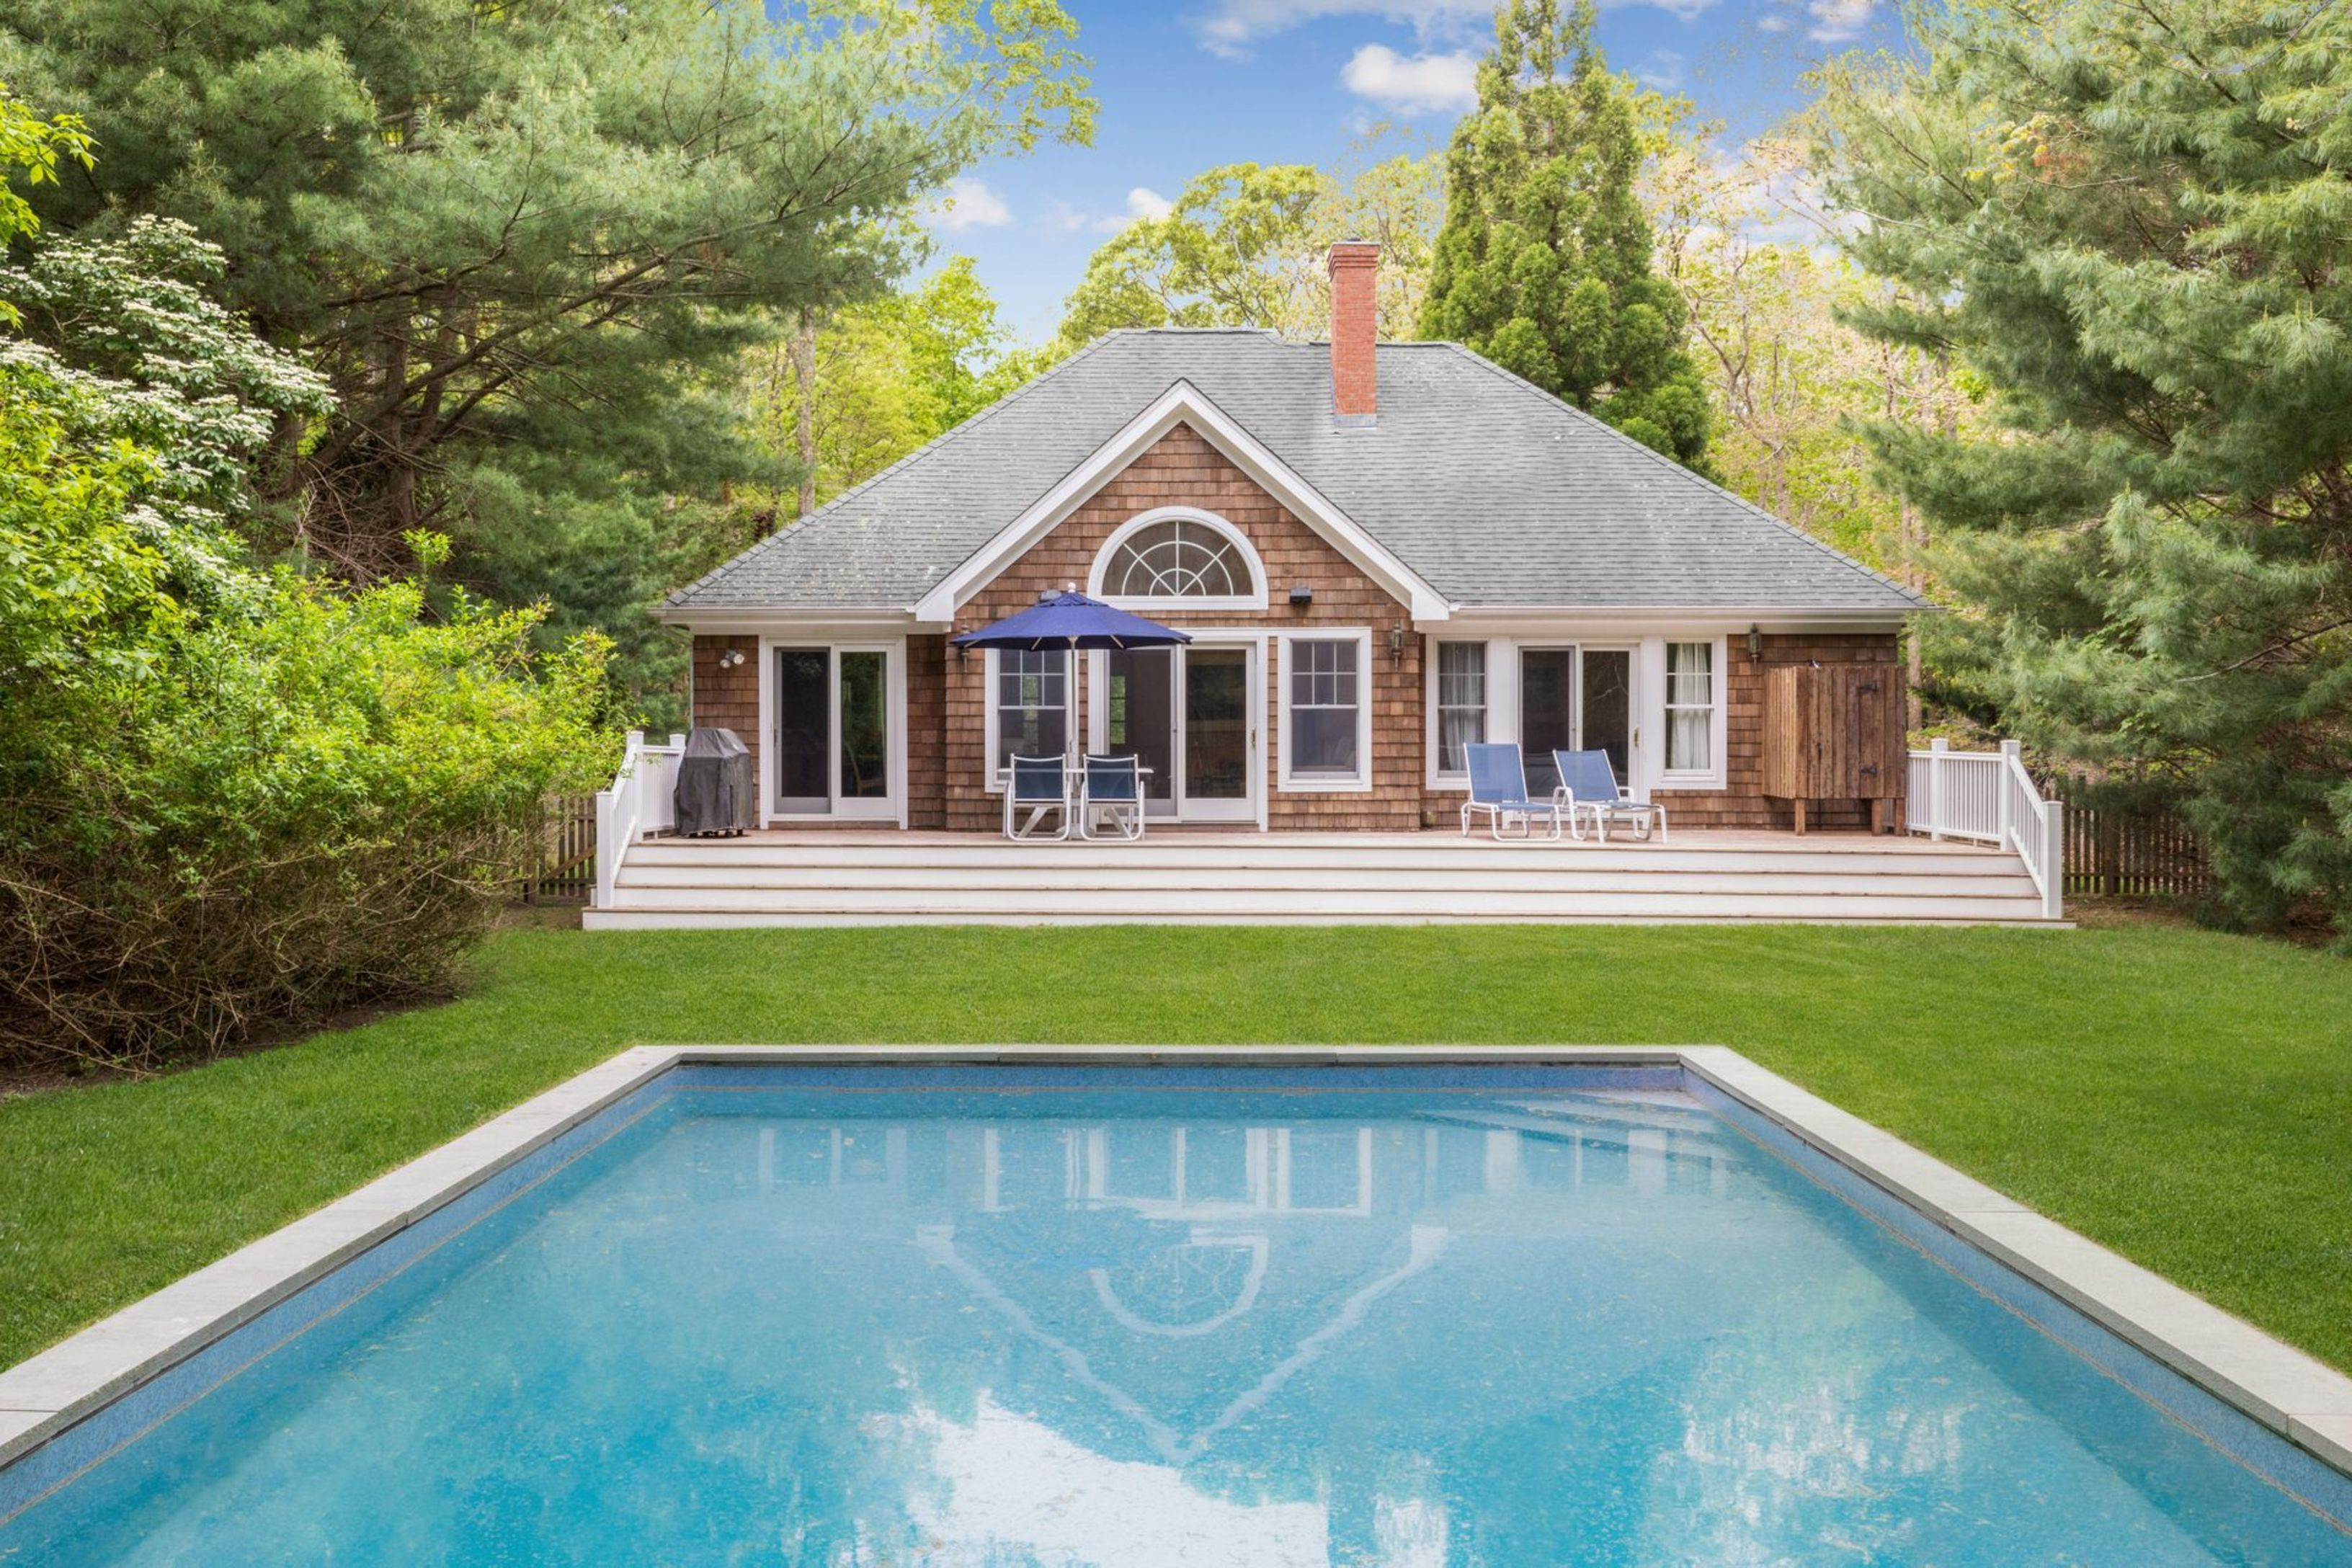 42 Sycamore Dr - East Hampton Springs, New York